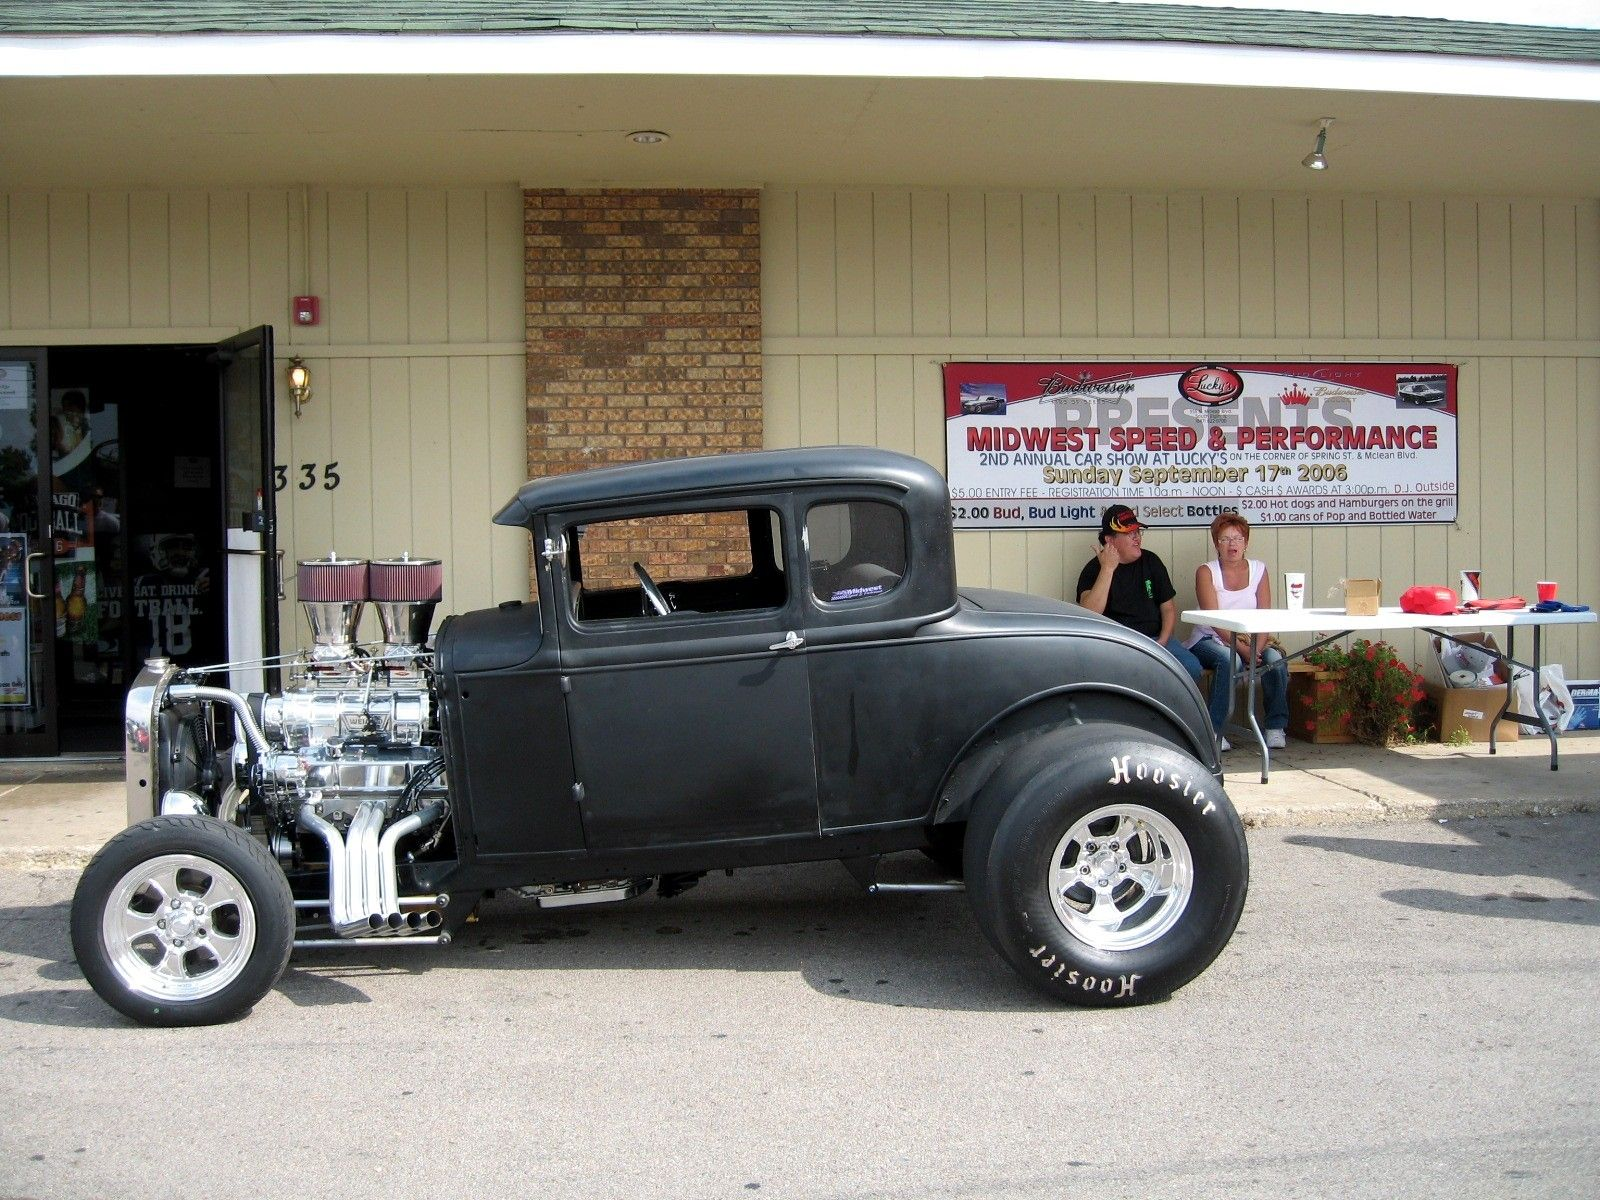 Report This Image Ford 1930 Ford Model A Sedan Model T For Sale ...